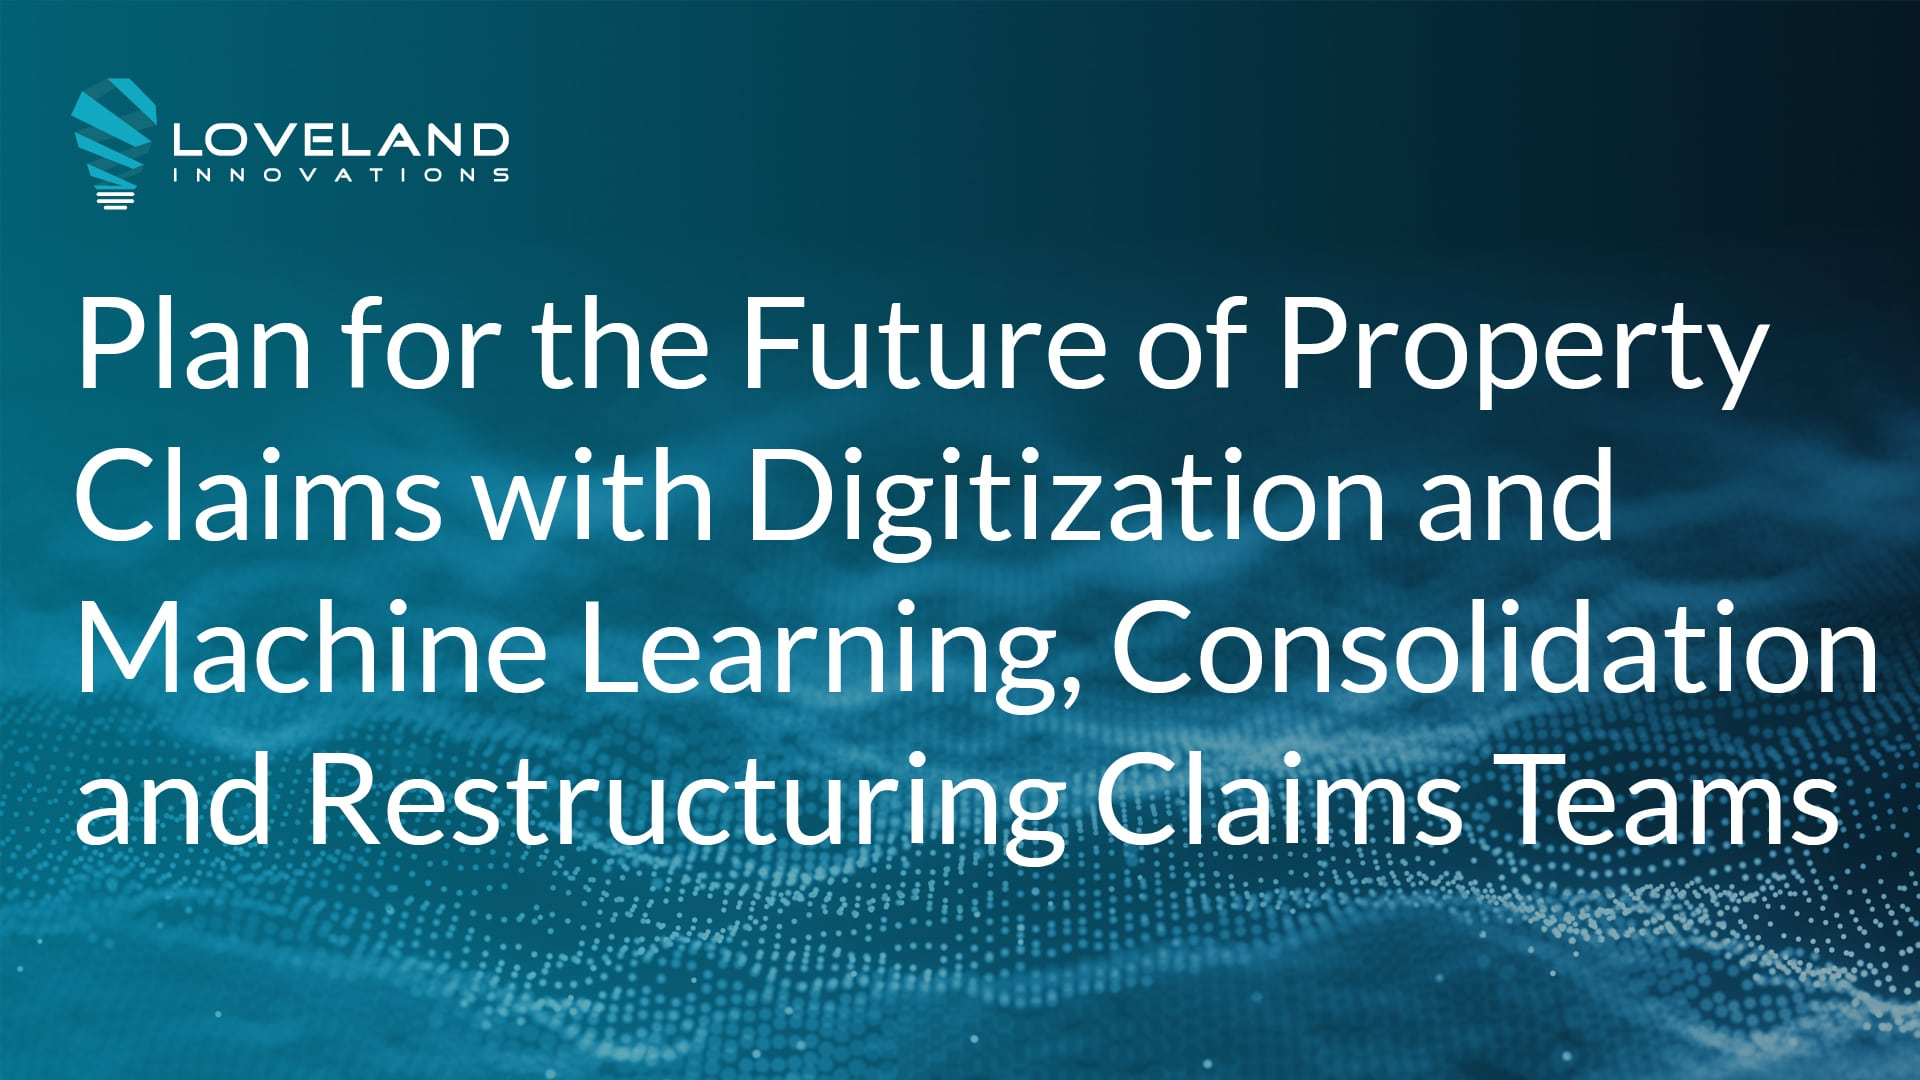 digitization of insurance property claims